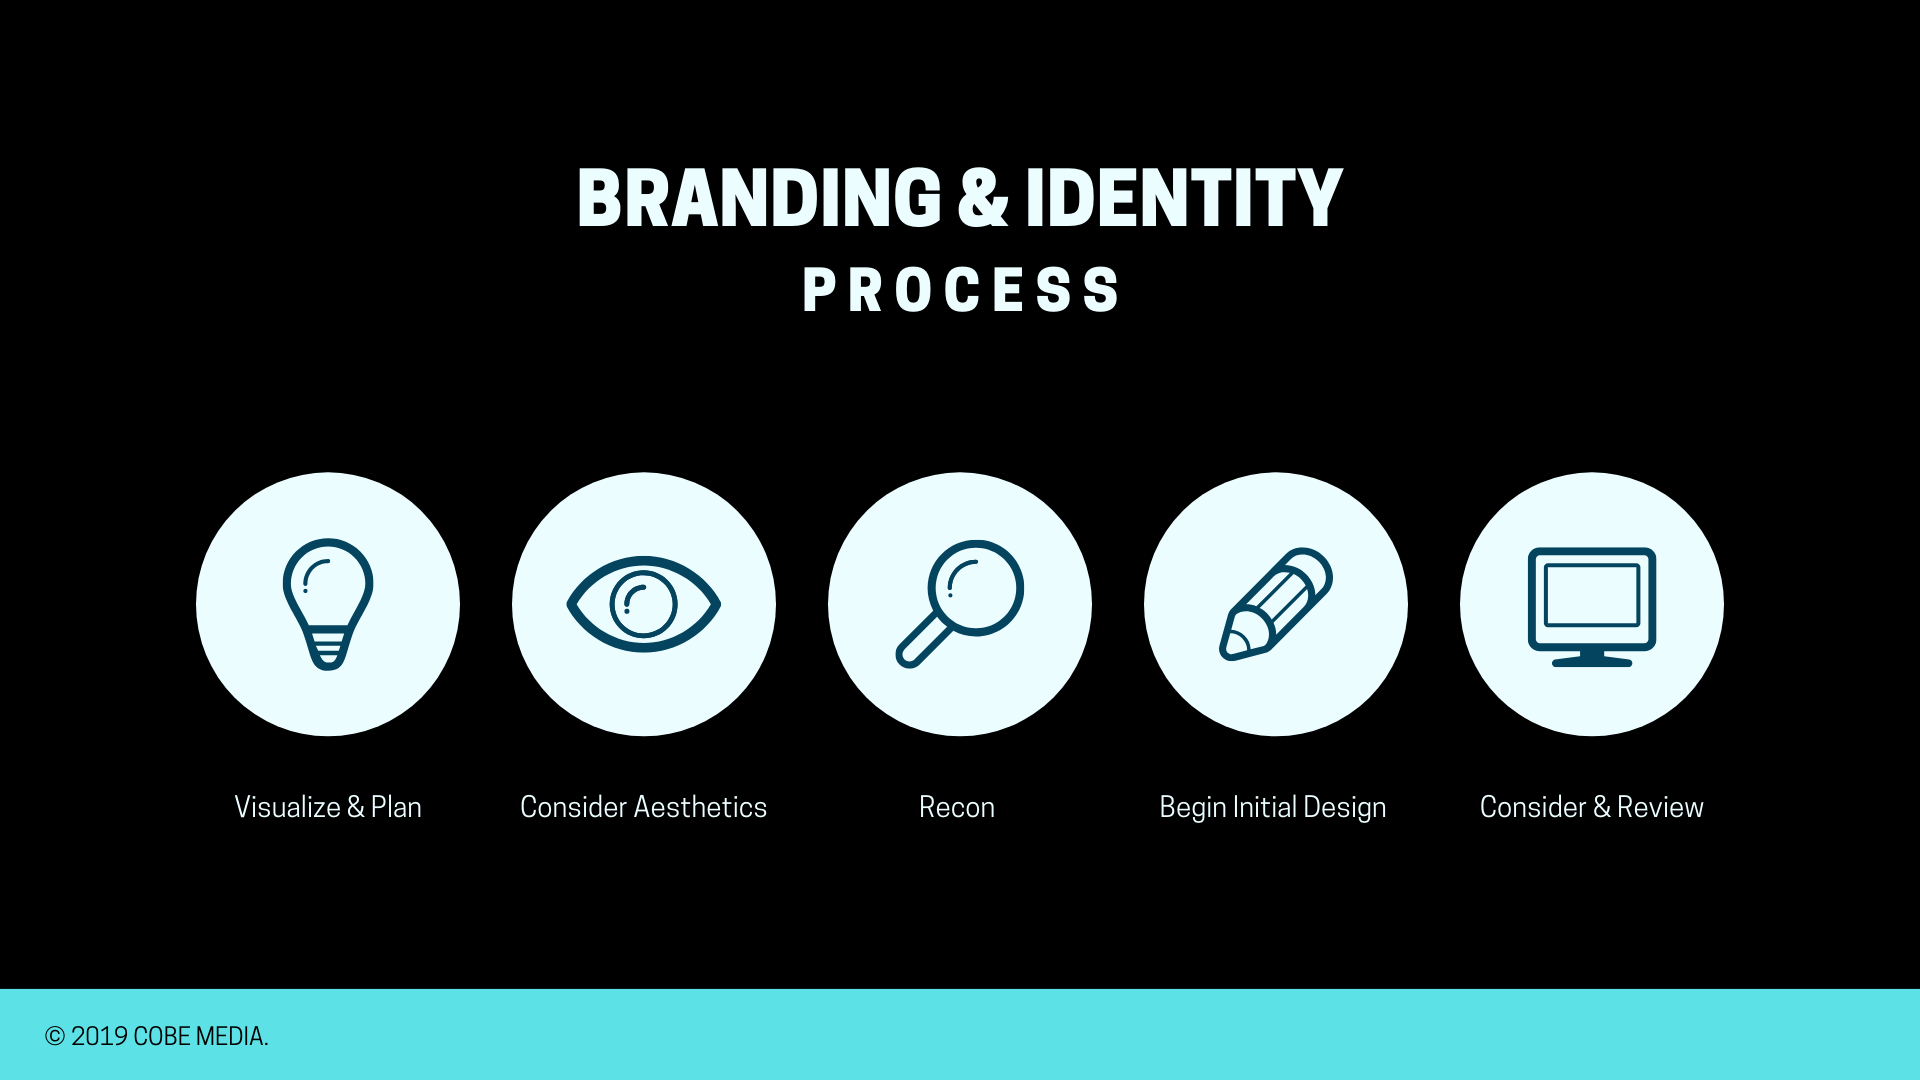 cobe media - our process to successful brands - branding and corporate identity